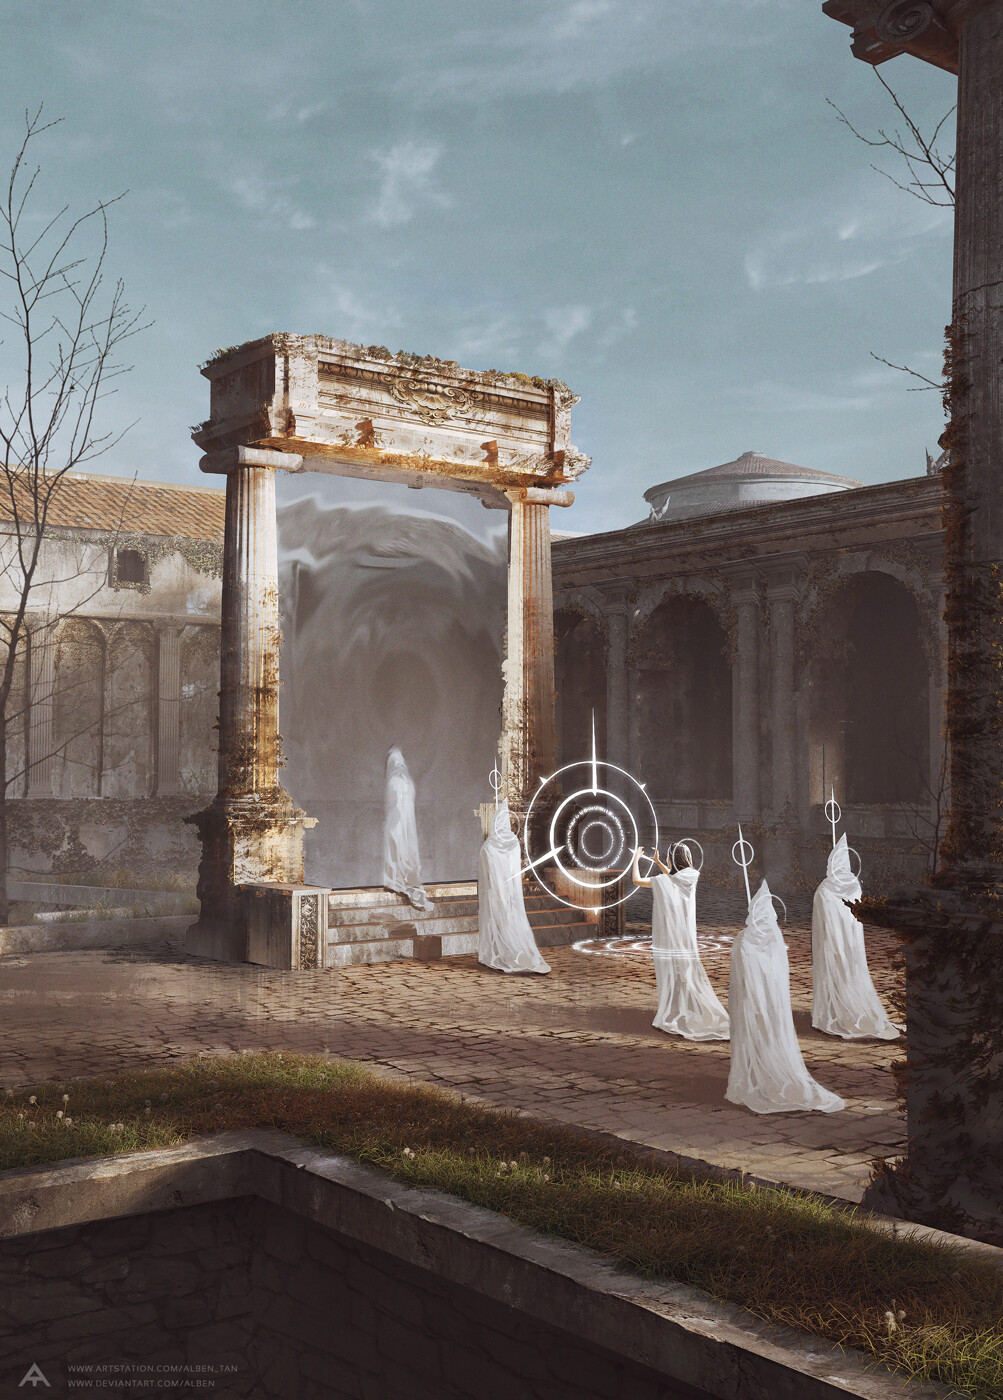 Gateway to Obscura